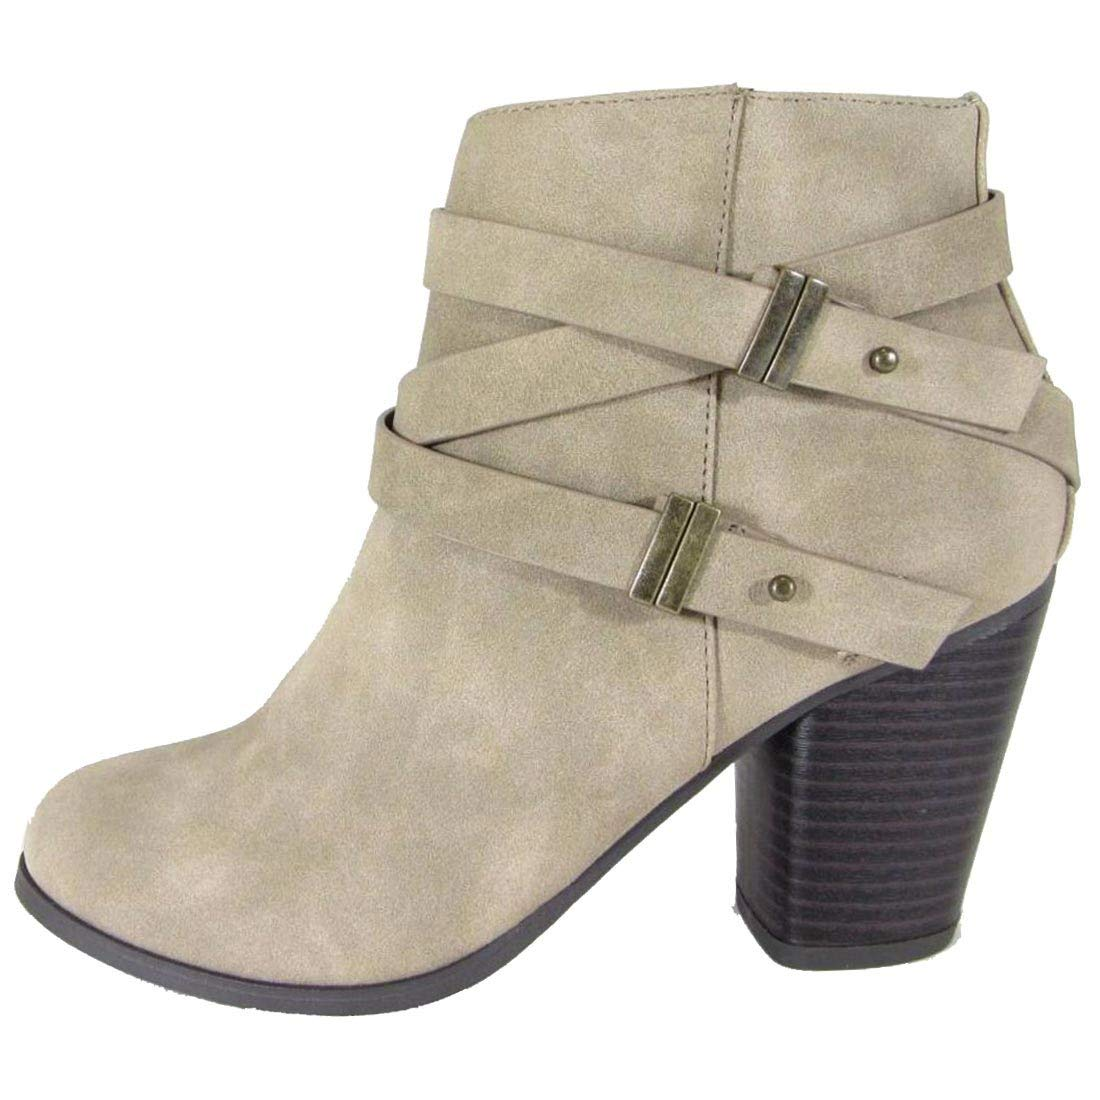 Soda Women's Closed Toe Criss Cross Multi Strap Stacked Ankle Bootie